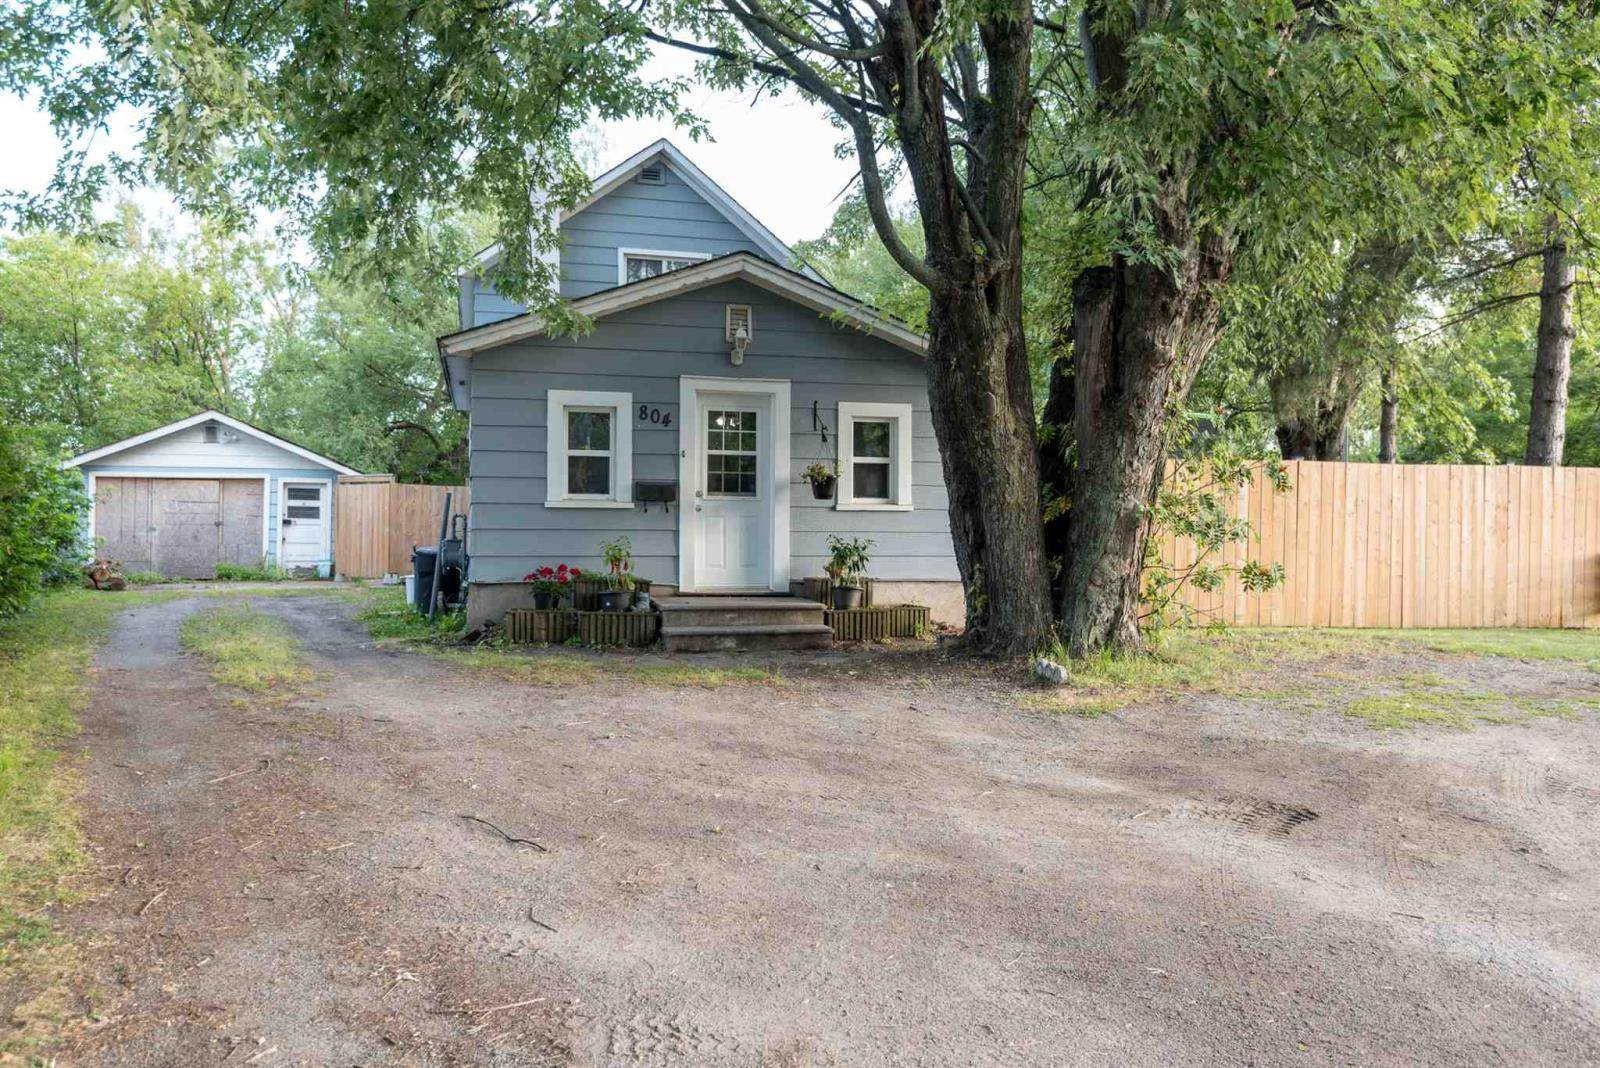 House for sale at 804 Northern Ave Thunder Bay Ontario - MLS: TB192738